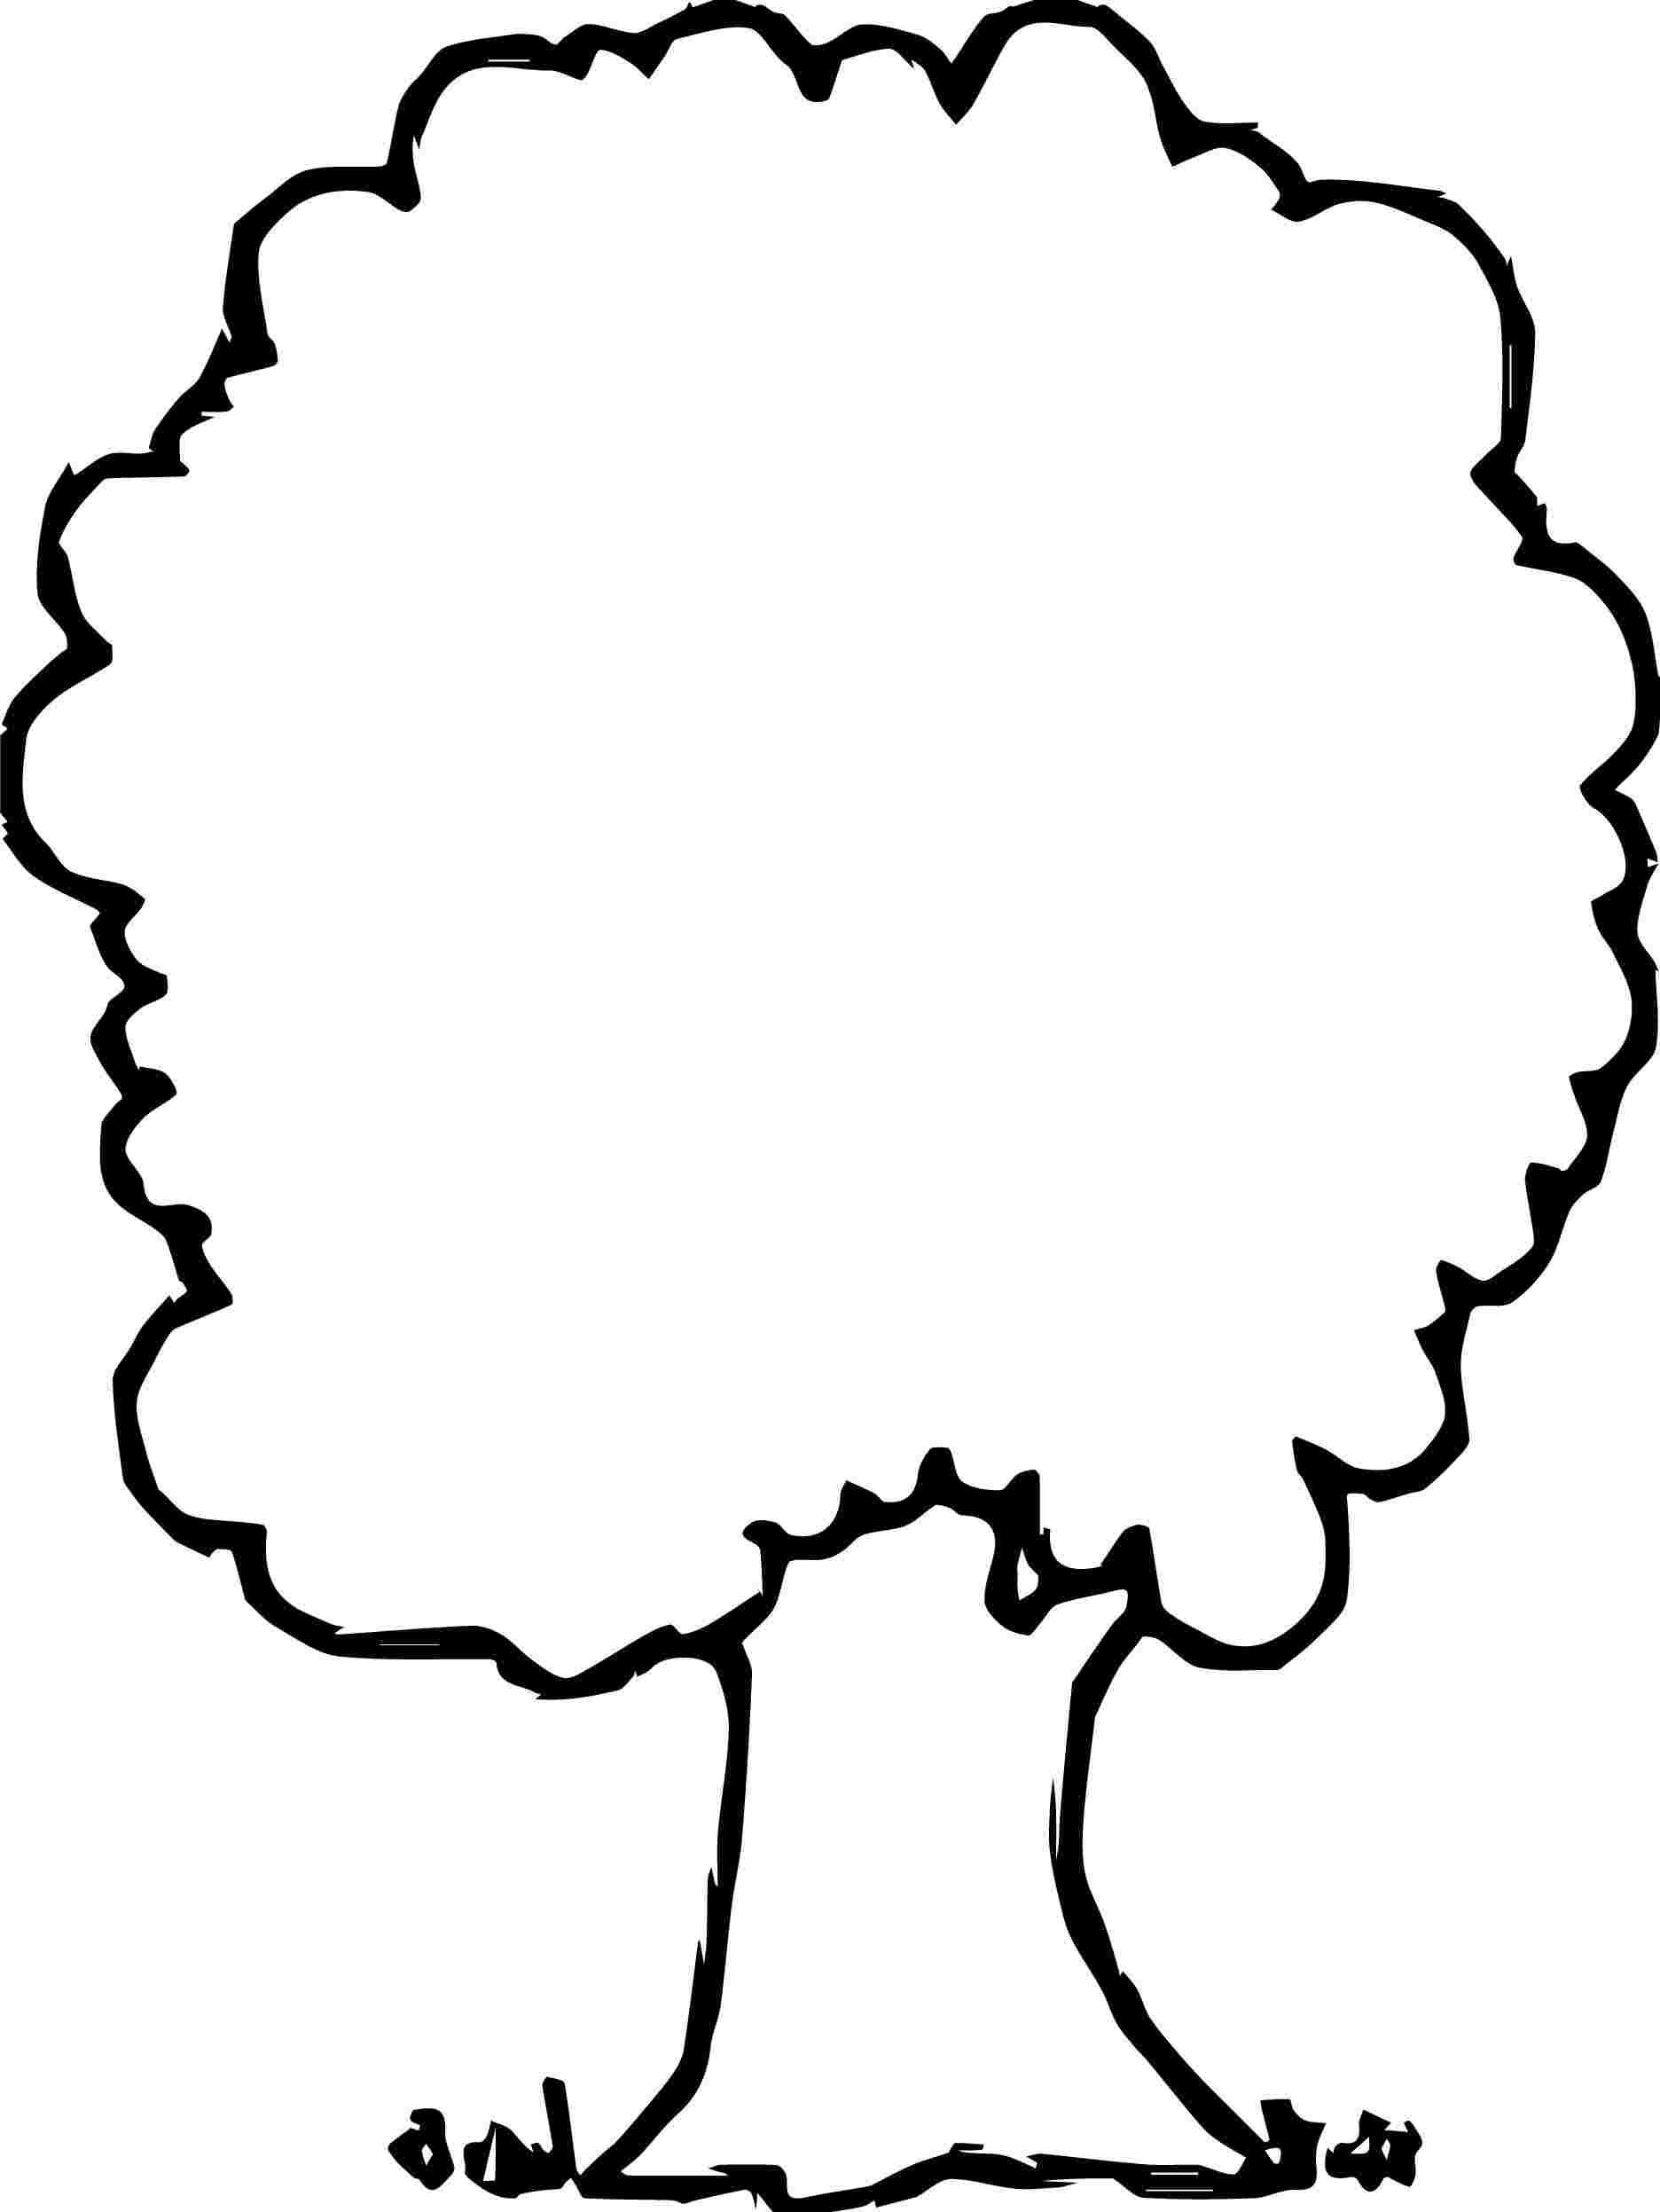 Simple Tree Coloring Pages Tree Coloring Page Christmas Tree Coloring Page Fruit Coloring Pages